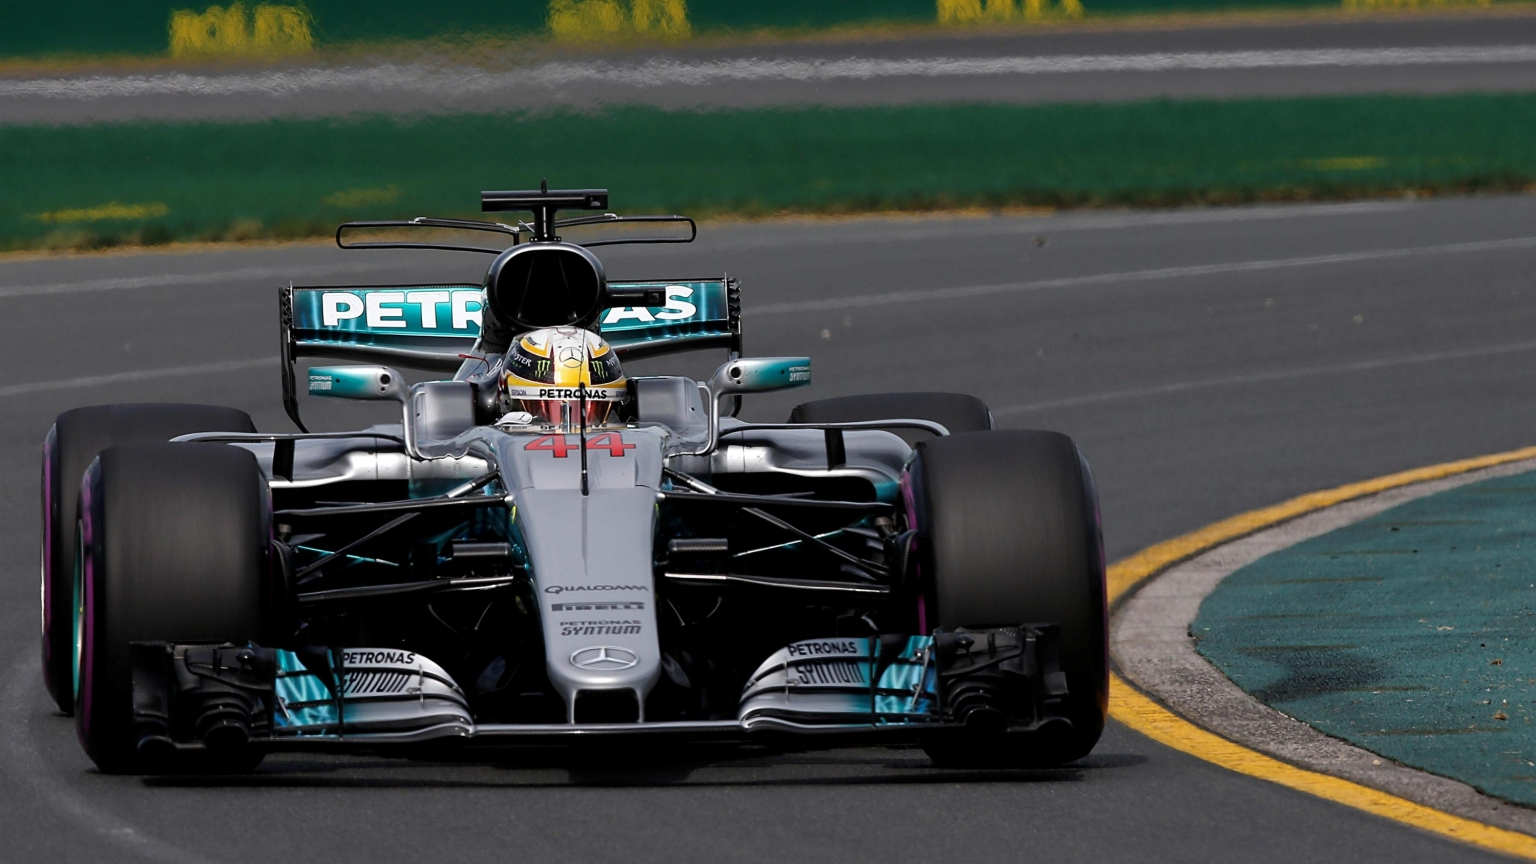 FP1 - Hamilton leads Mercedes 1-2 in opening session of 2017